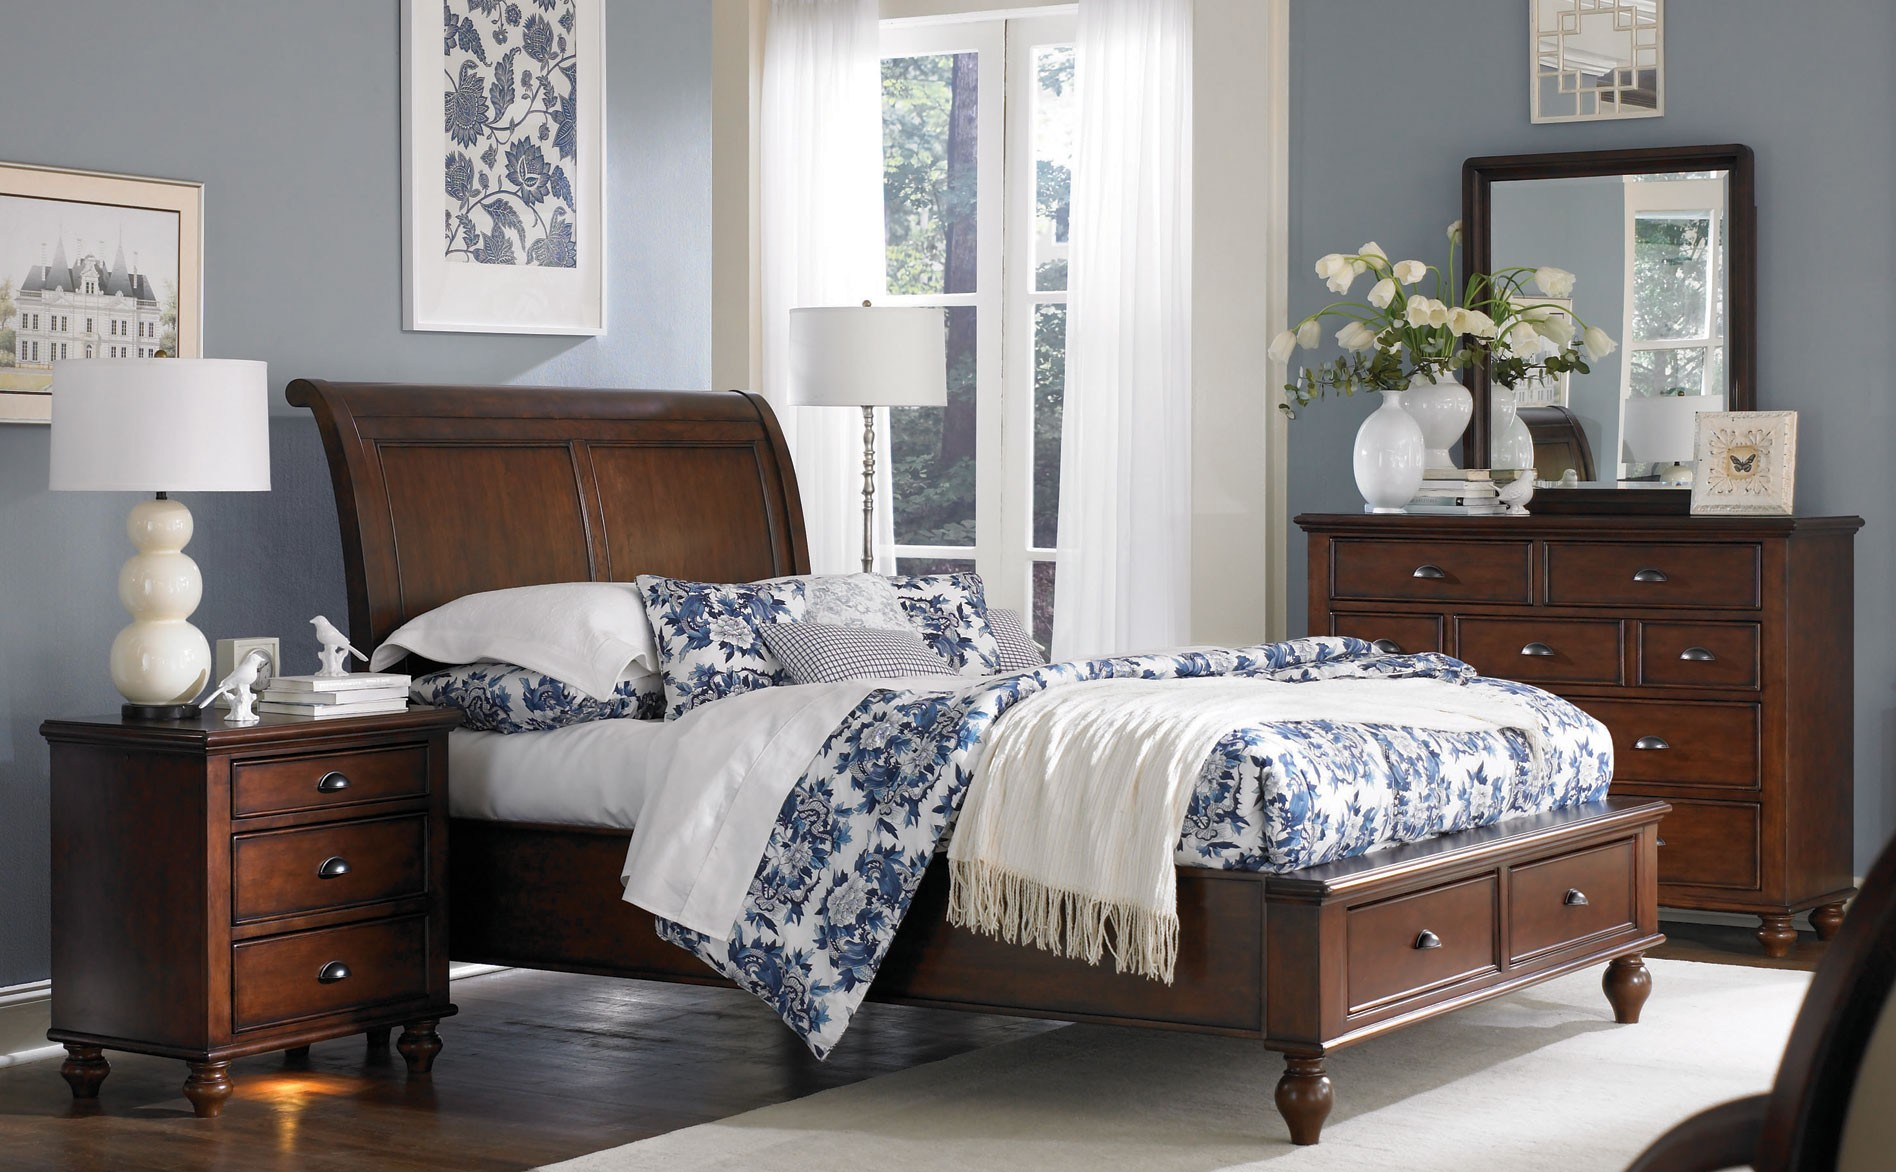 Cool cherry bedroom furniture with lovable decor for bedroom decorating ideas 11 ksrodxy